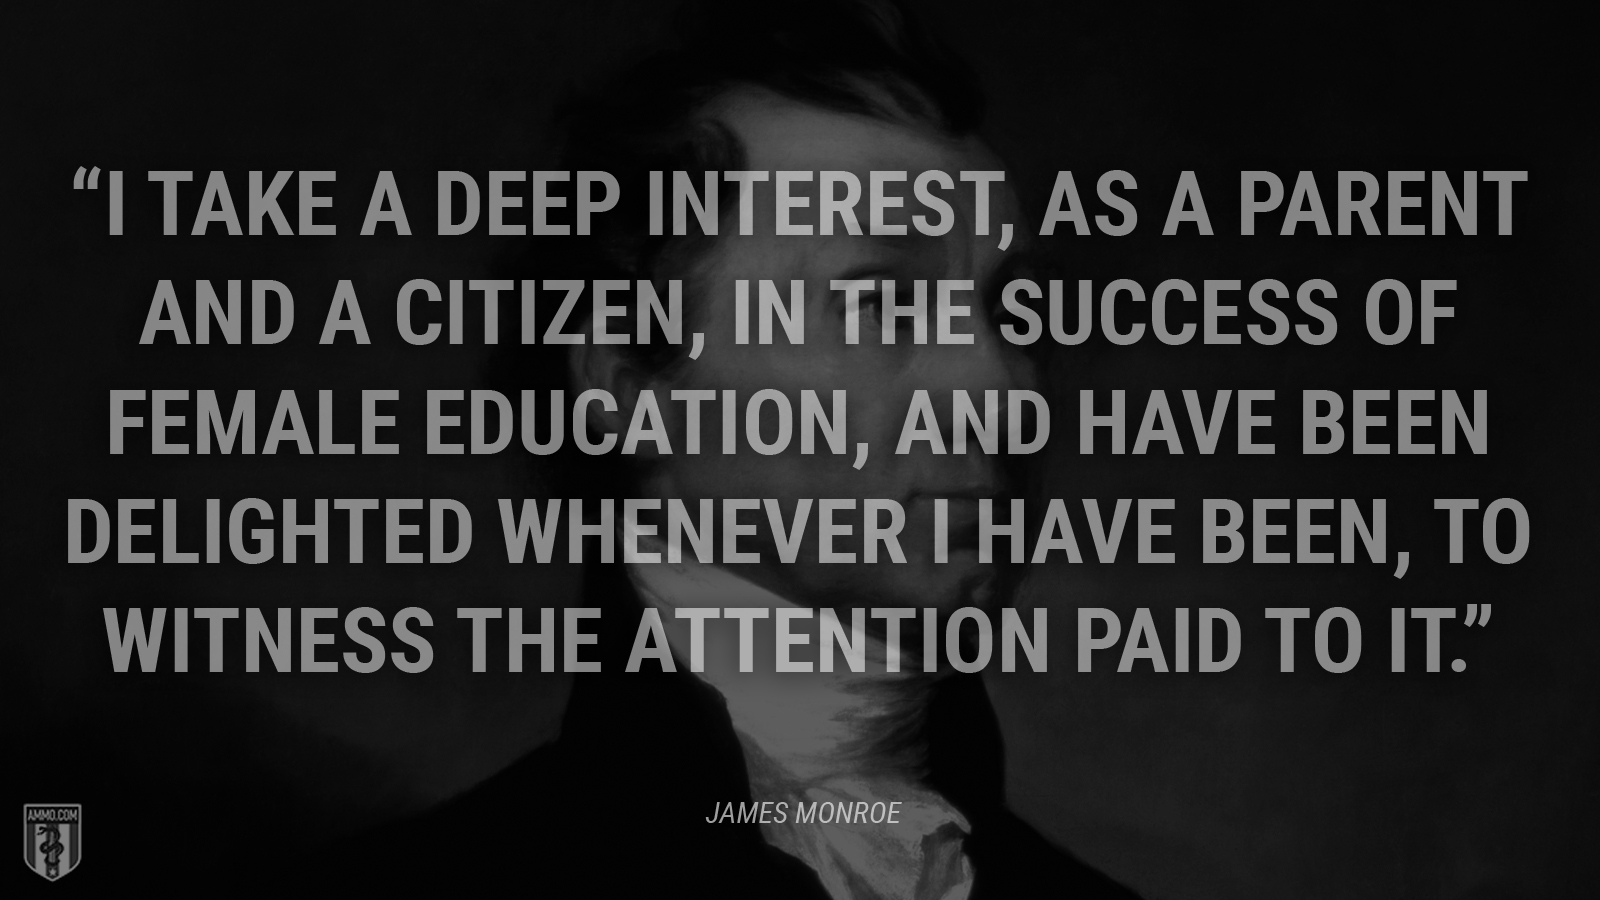 """I take a deep interest, as a parent and a citizen, in the success of female education, and have been delighted whenever I have been, to witness the attention paid to it."" - James Monroe"